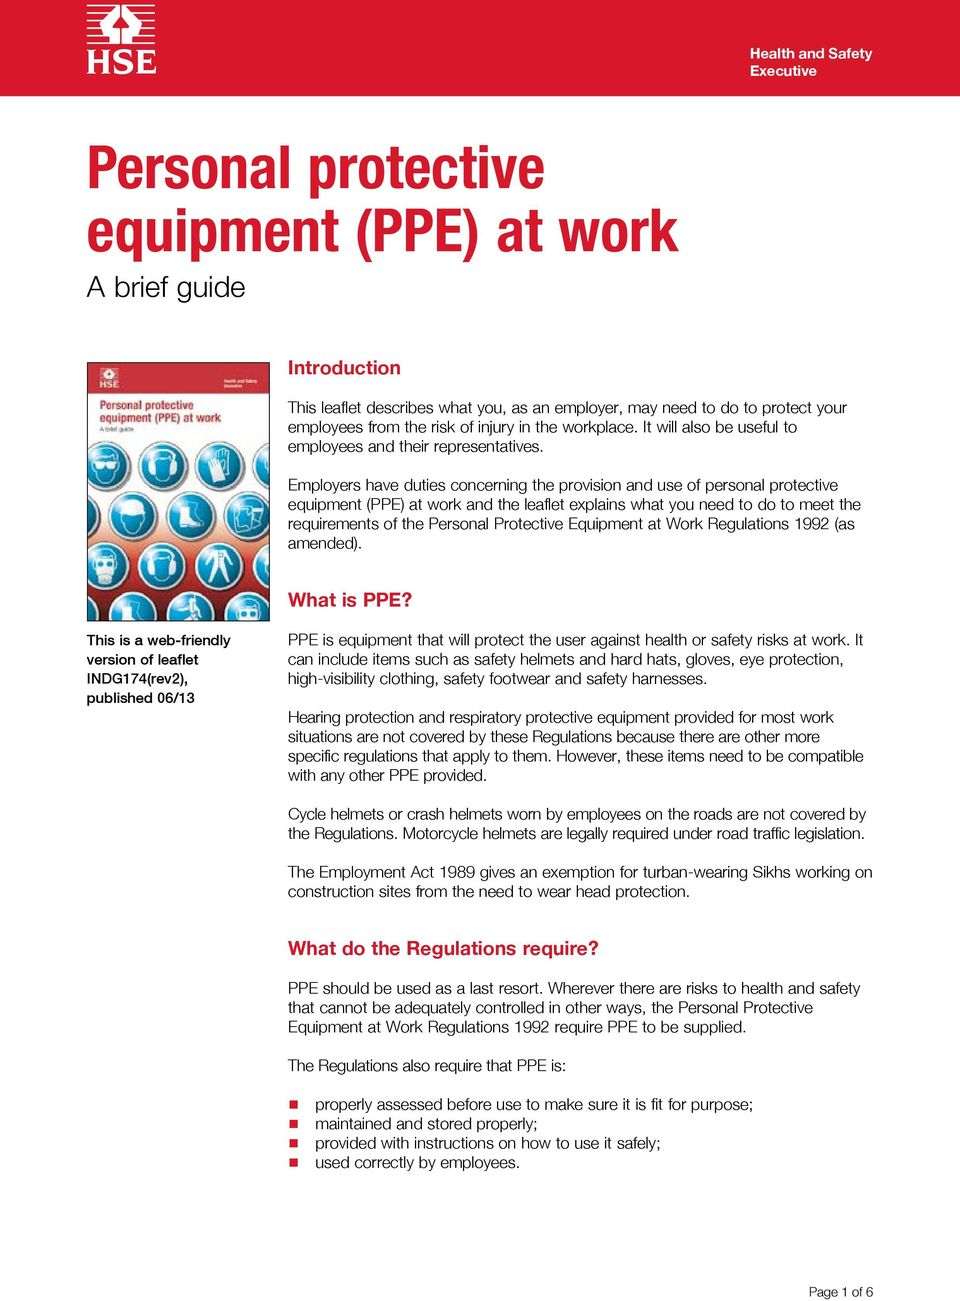 Employers have duties concerning the provision and use of personal protective equipment (PPE) at work and the leaflet explains what you need to do to meet the requirements of the Personal Protective